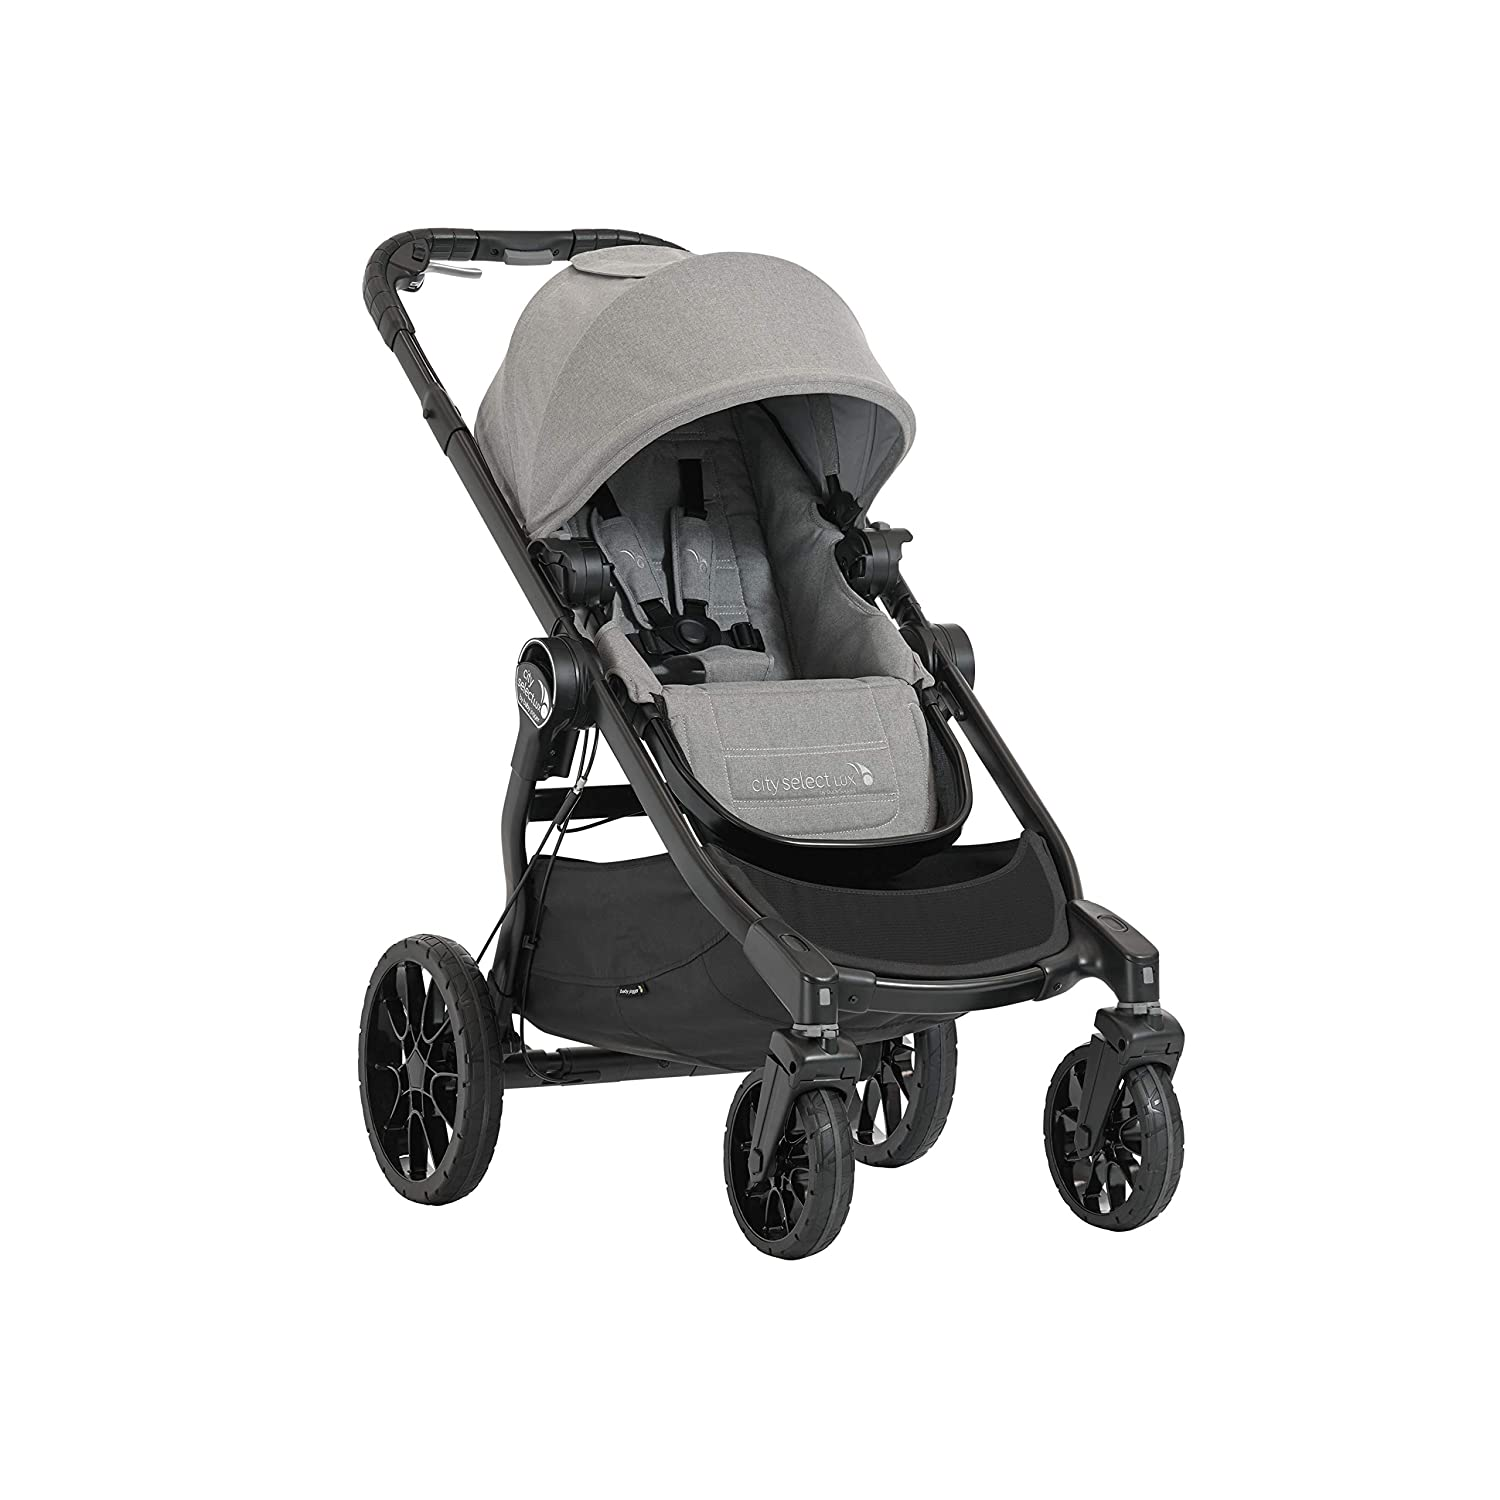 Baby Jogger City Select Lux Stroller Baby Stroller With 20 Ways To Ride Goes From Single To Double